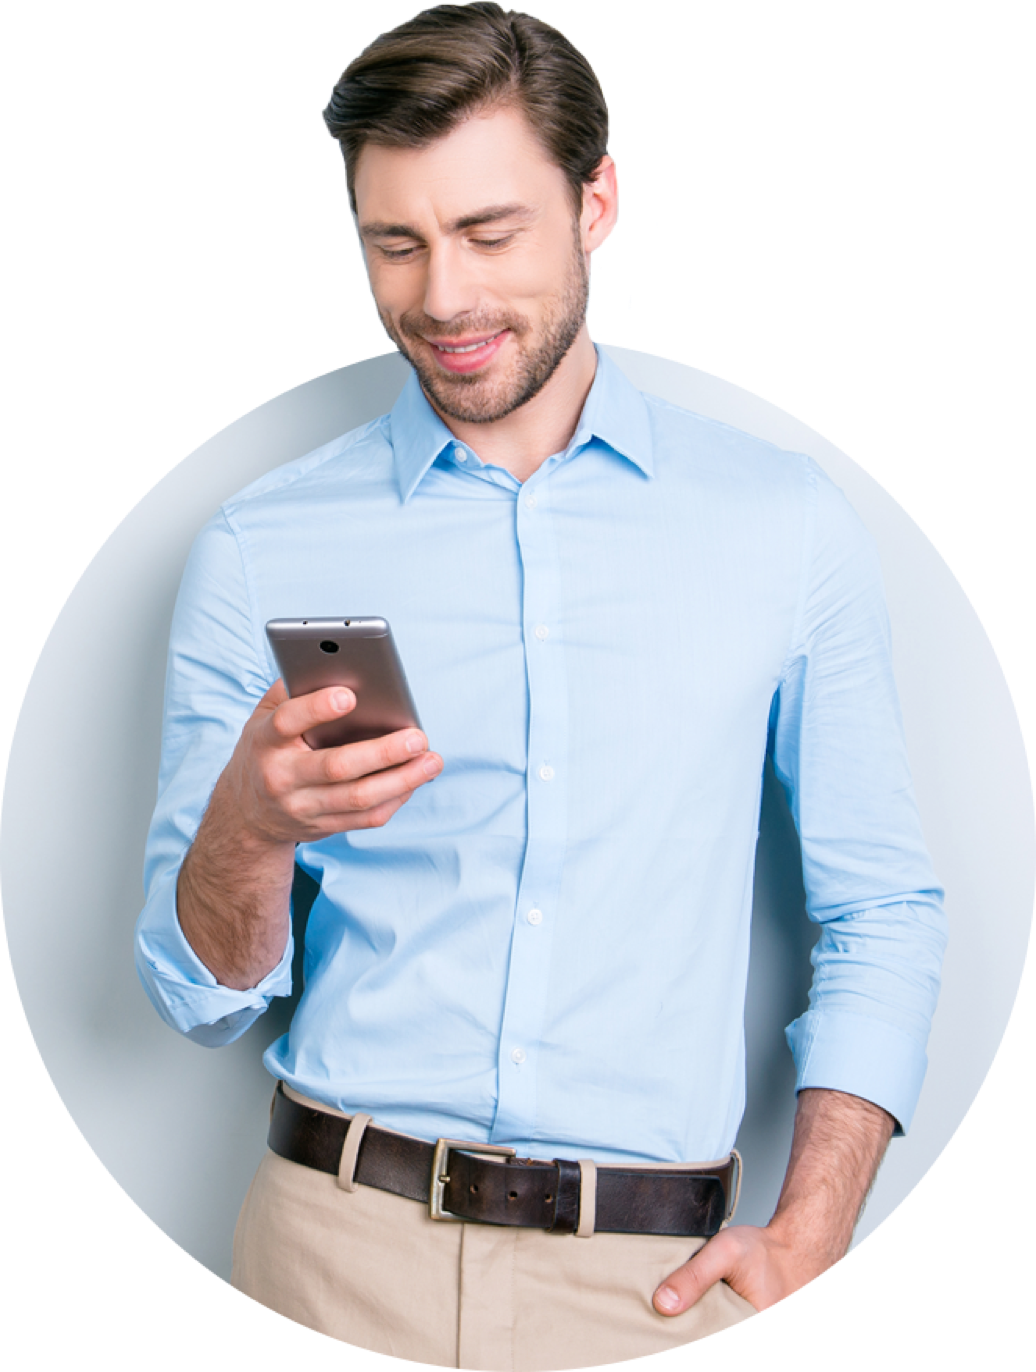 Man smiling at his phone dressed up